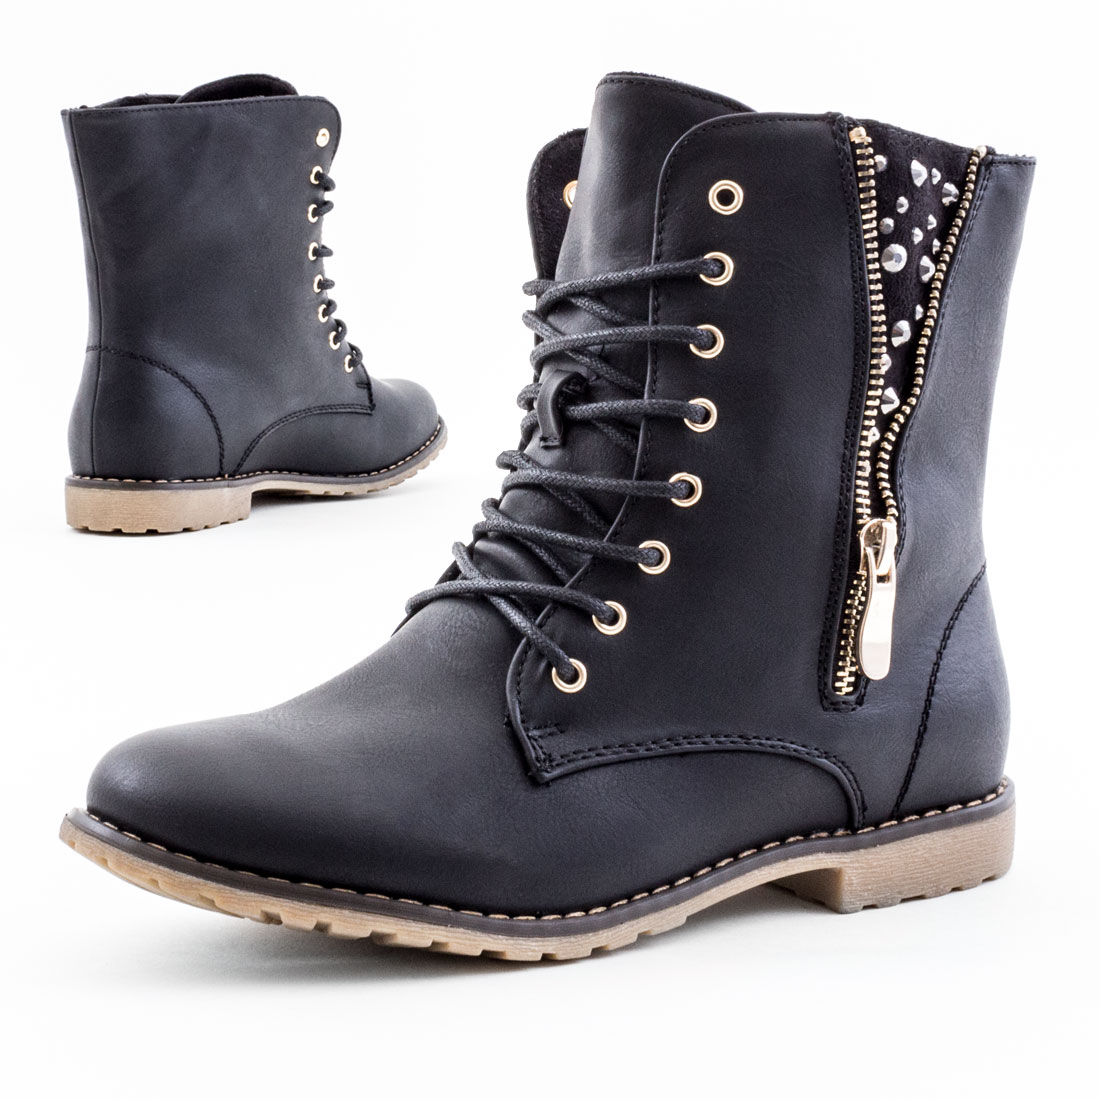 neu damen biker boots schn r stiefeletten strass nieten schuhe 36 37 38 39 40 41 ebay. Black Bedroom Furniture Sets. Home Design Ideas